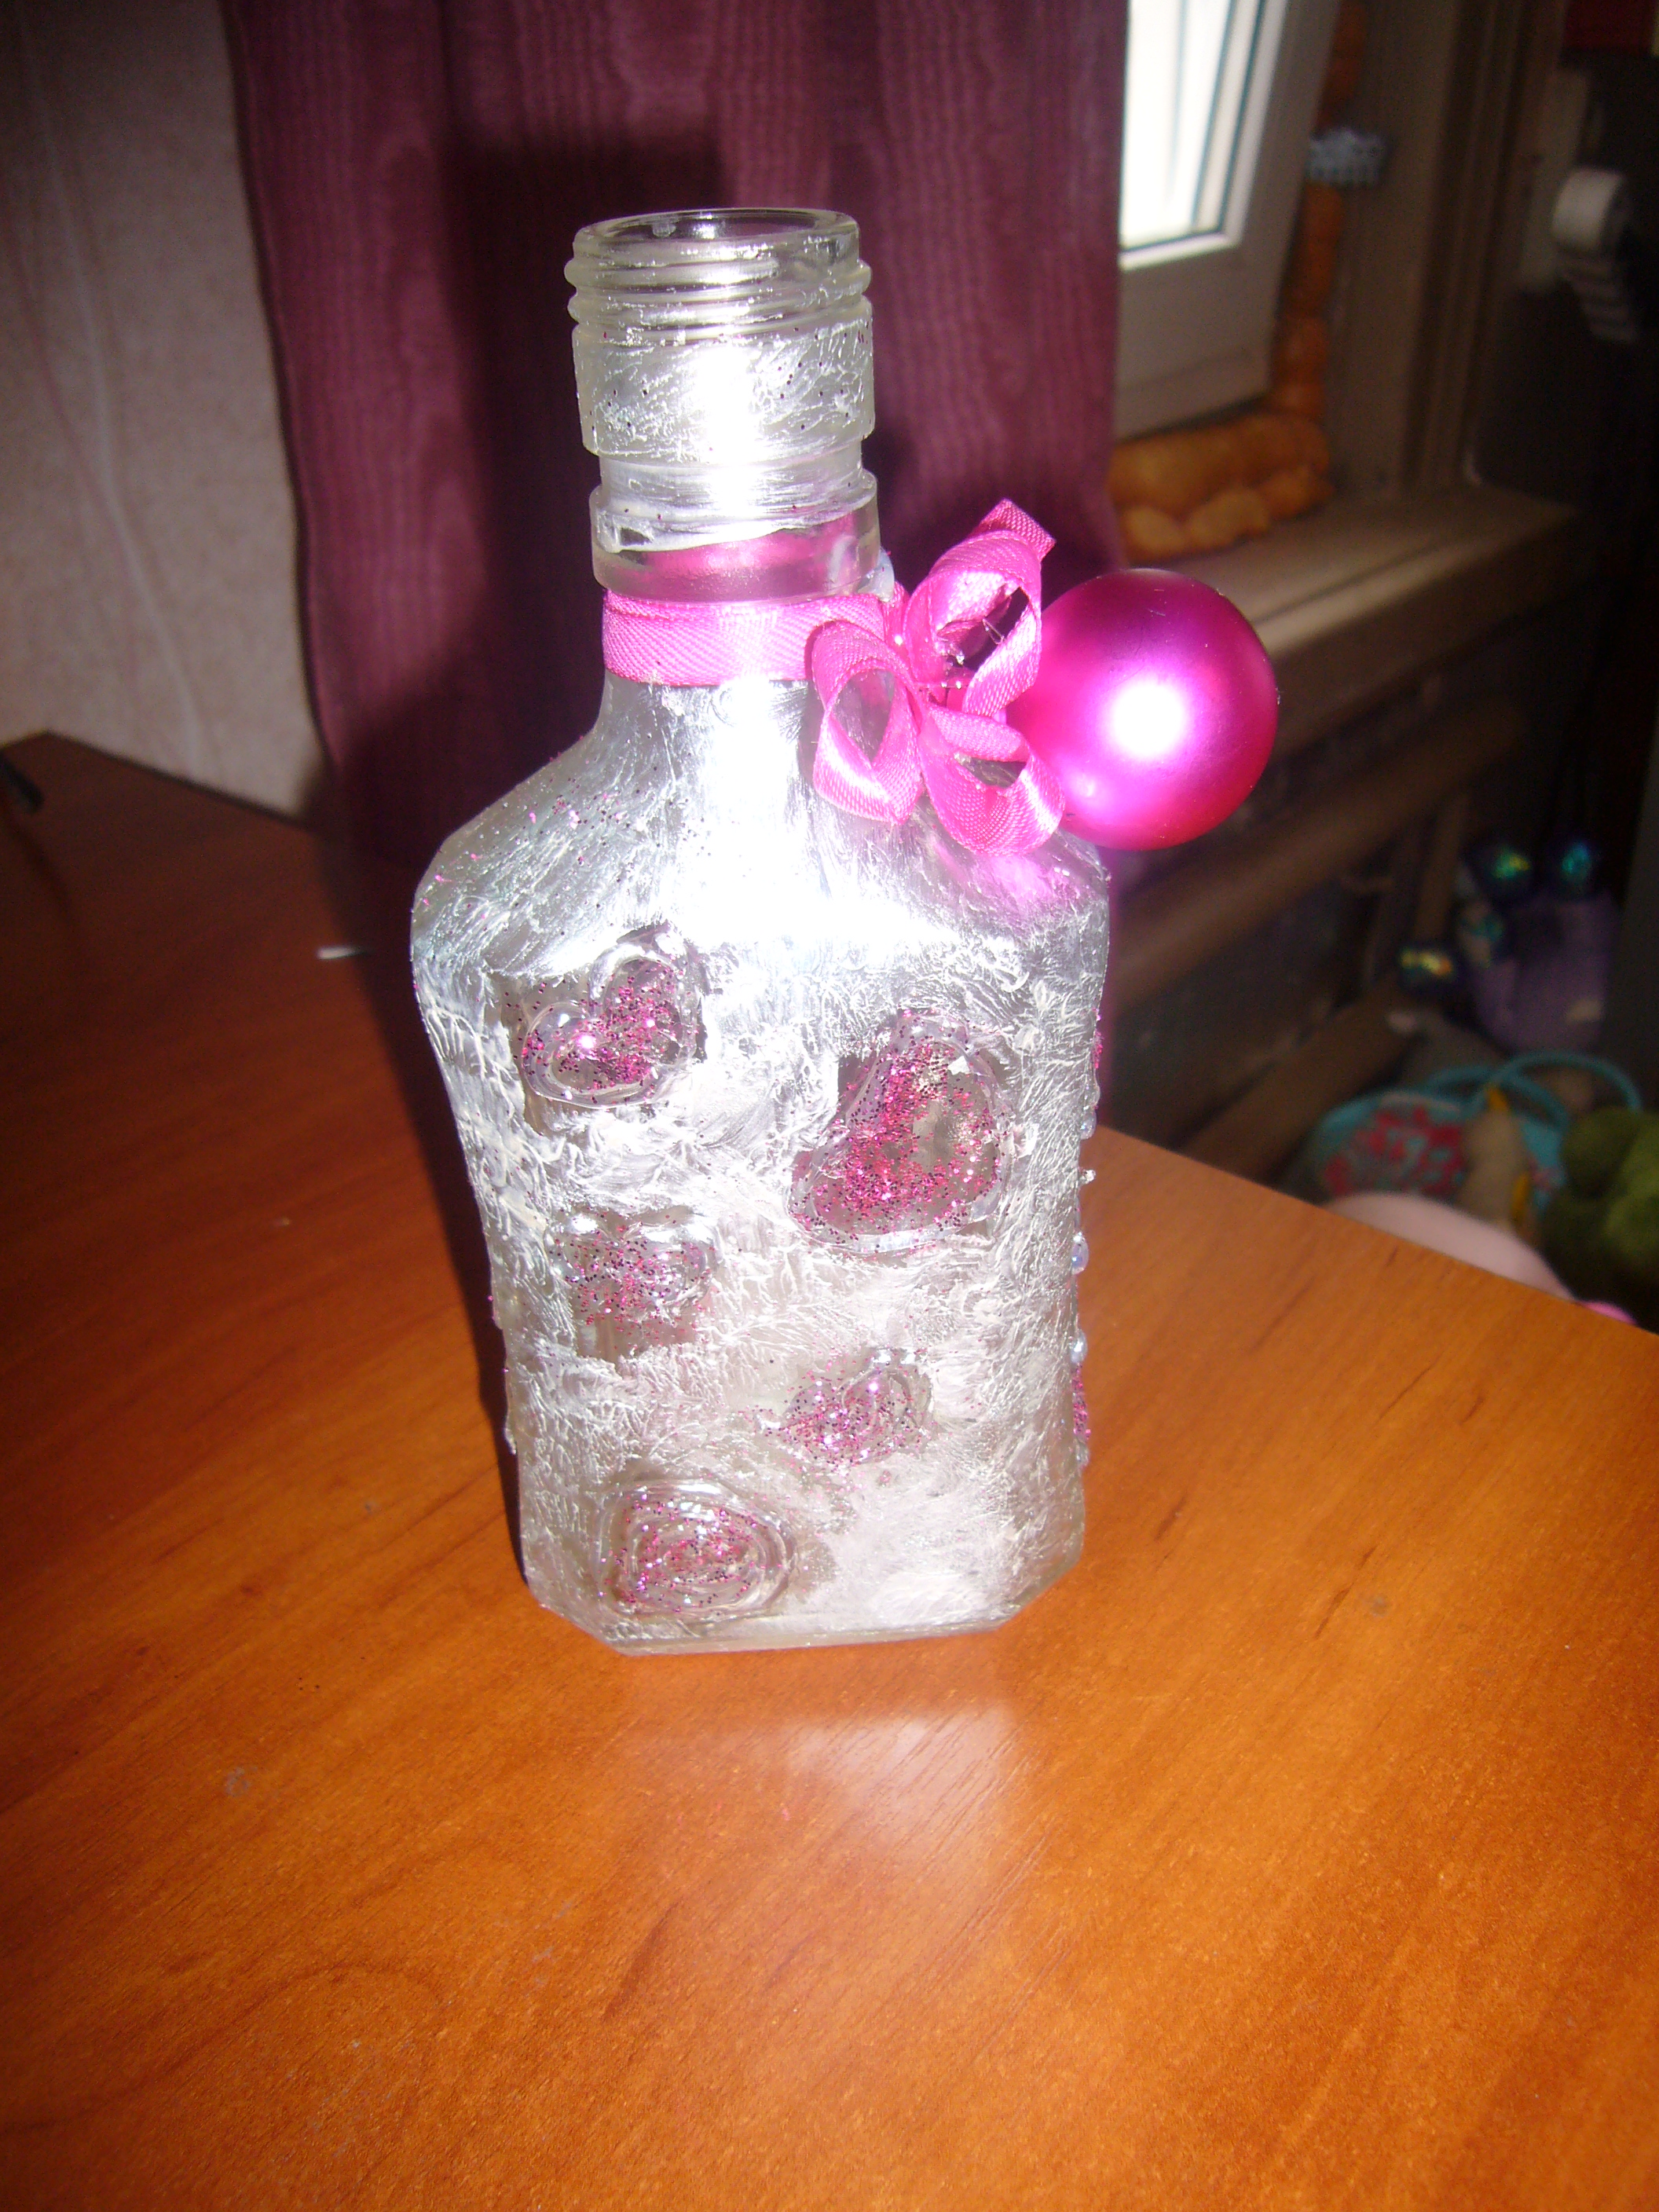 Bottle decor diy crafts decoupage ideas recycled crafts - How to decorate glass bottles ...